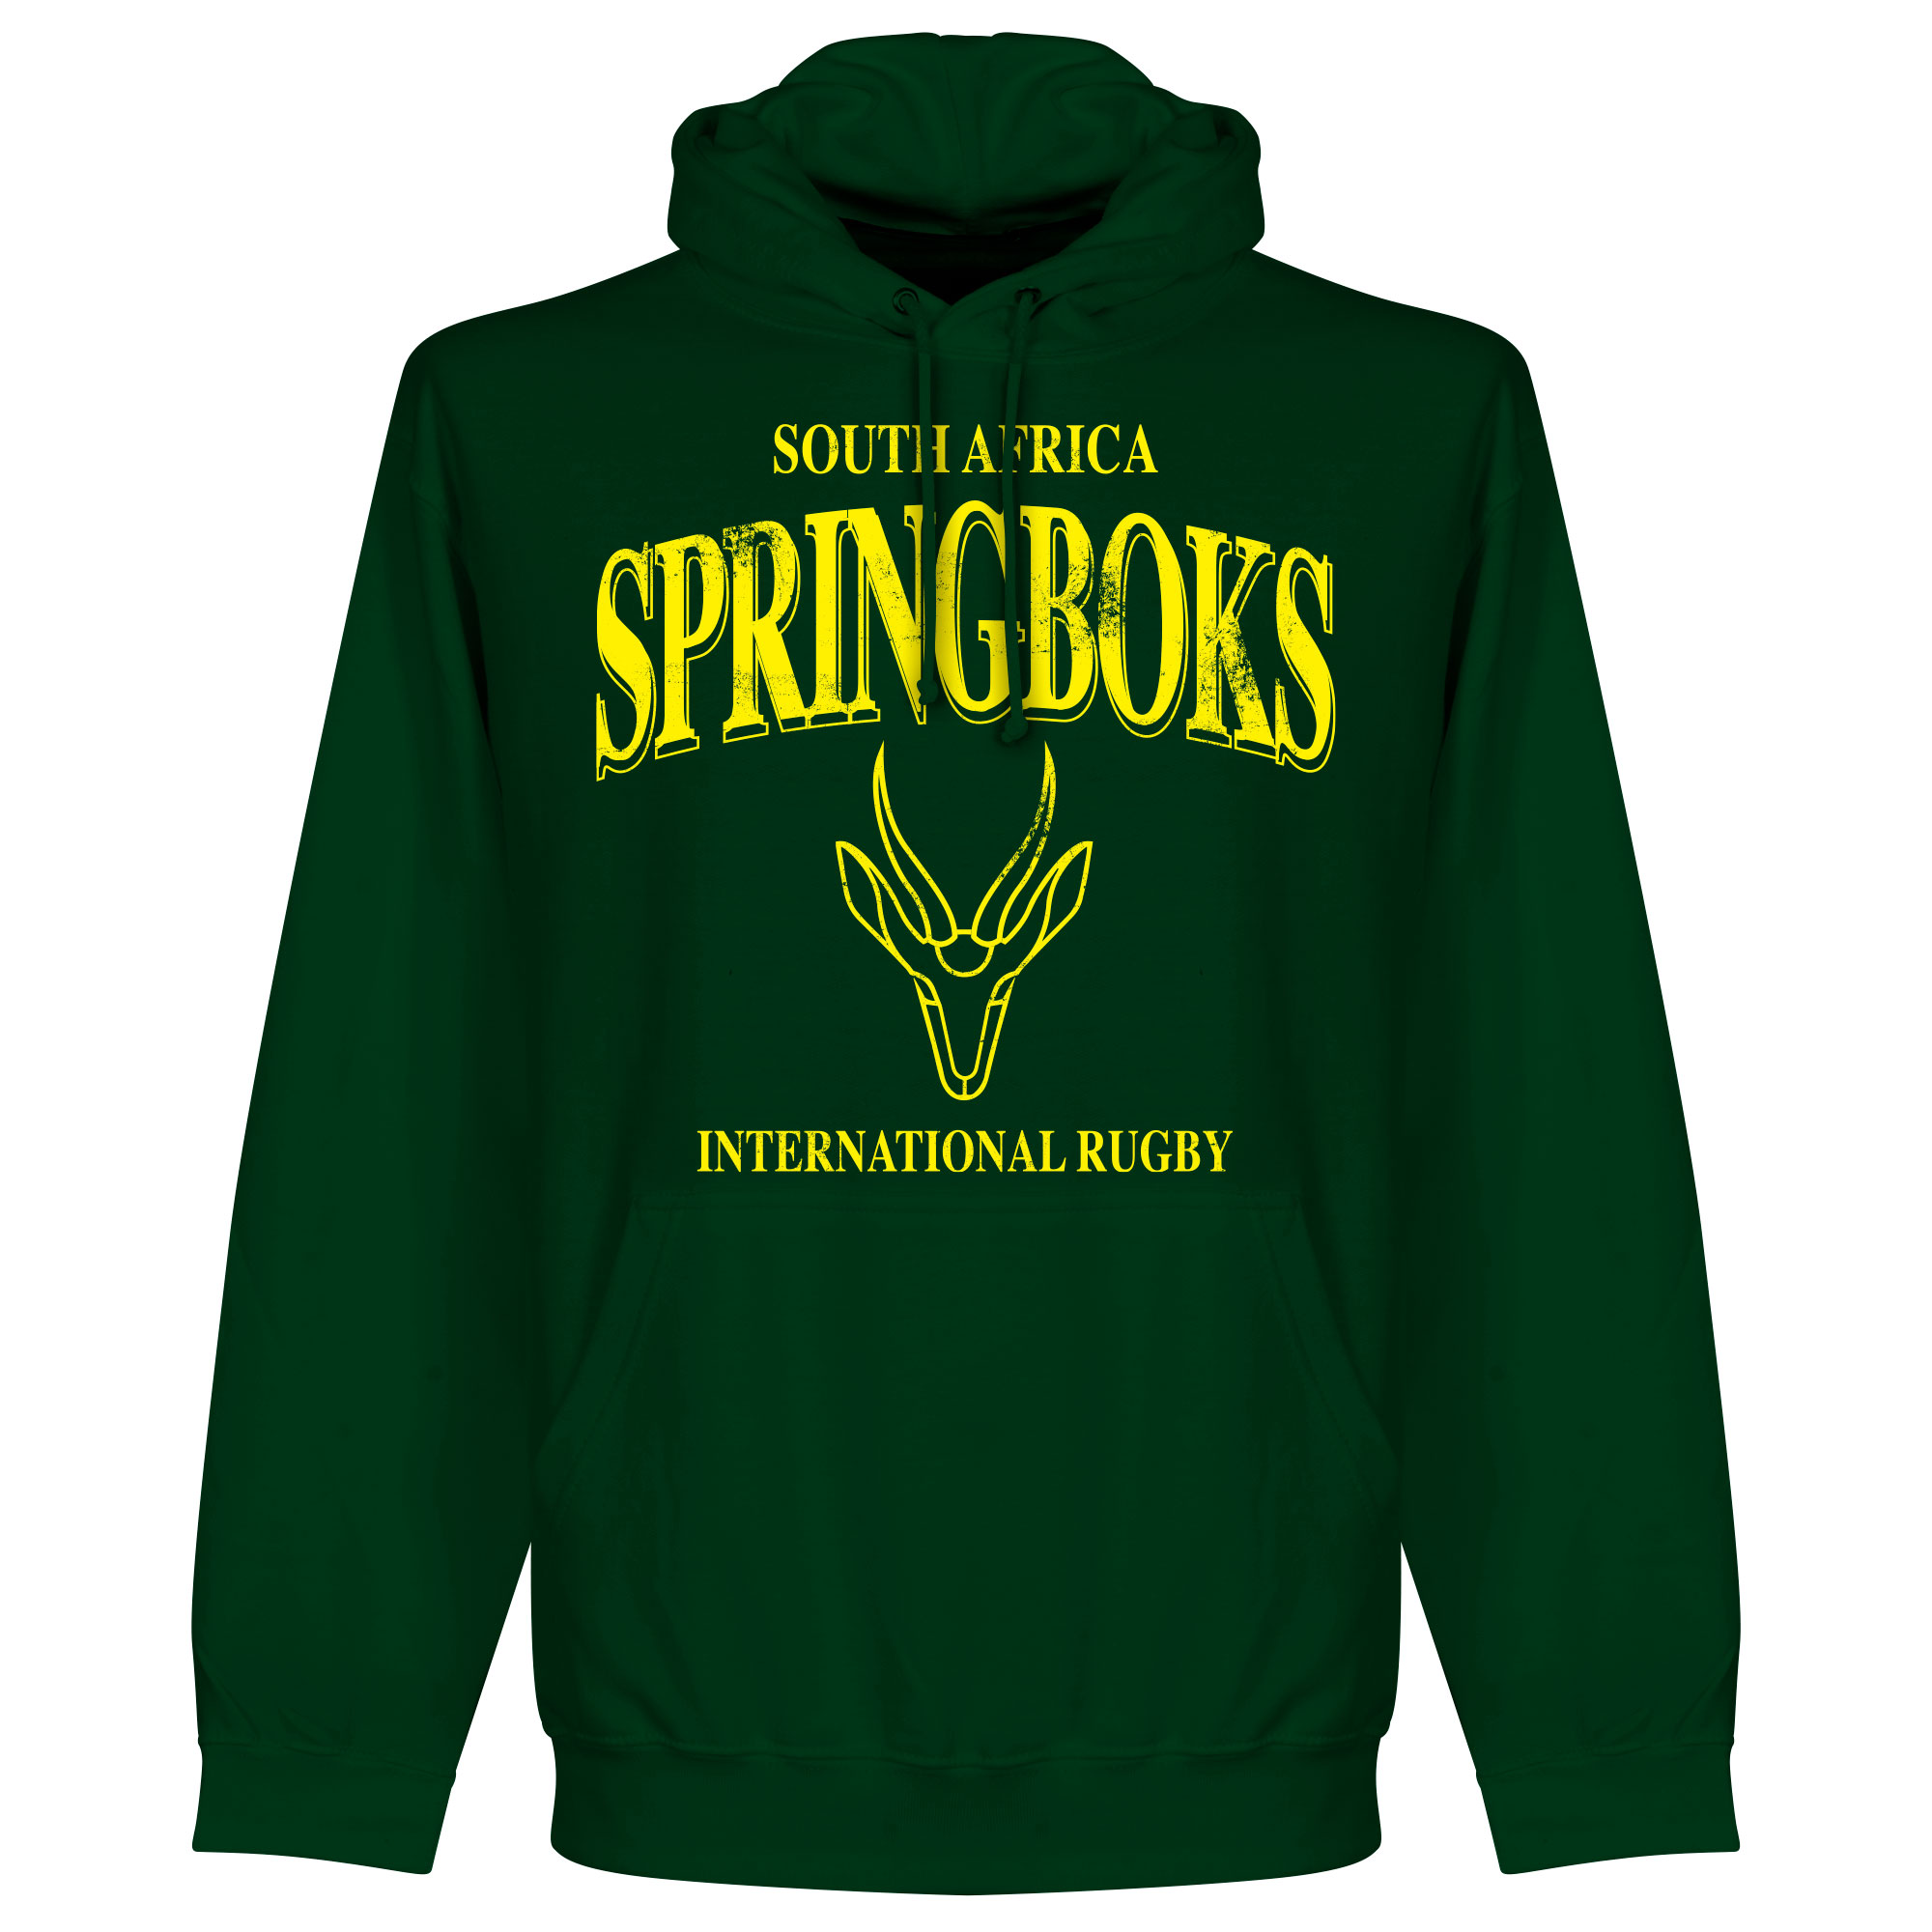 Zuid Afrika Spingboks Rugby Hooded Sweater - Donkergroen